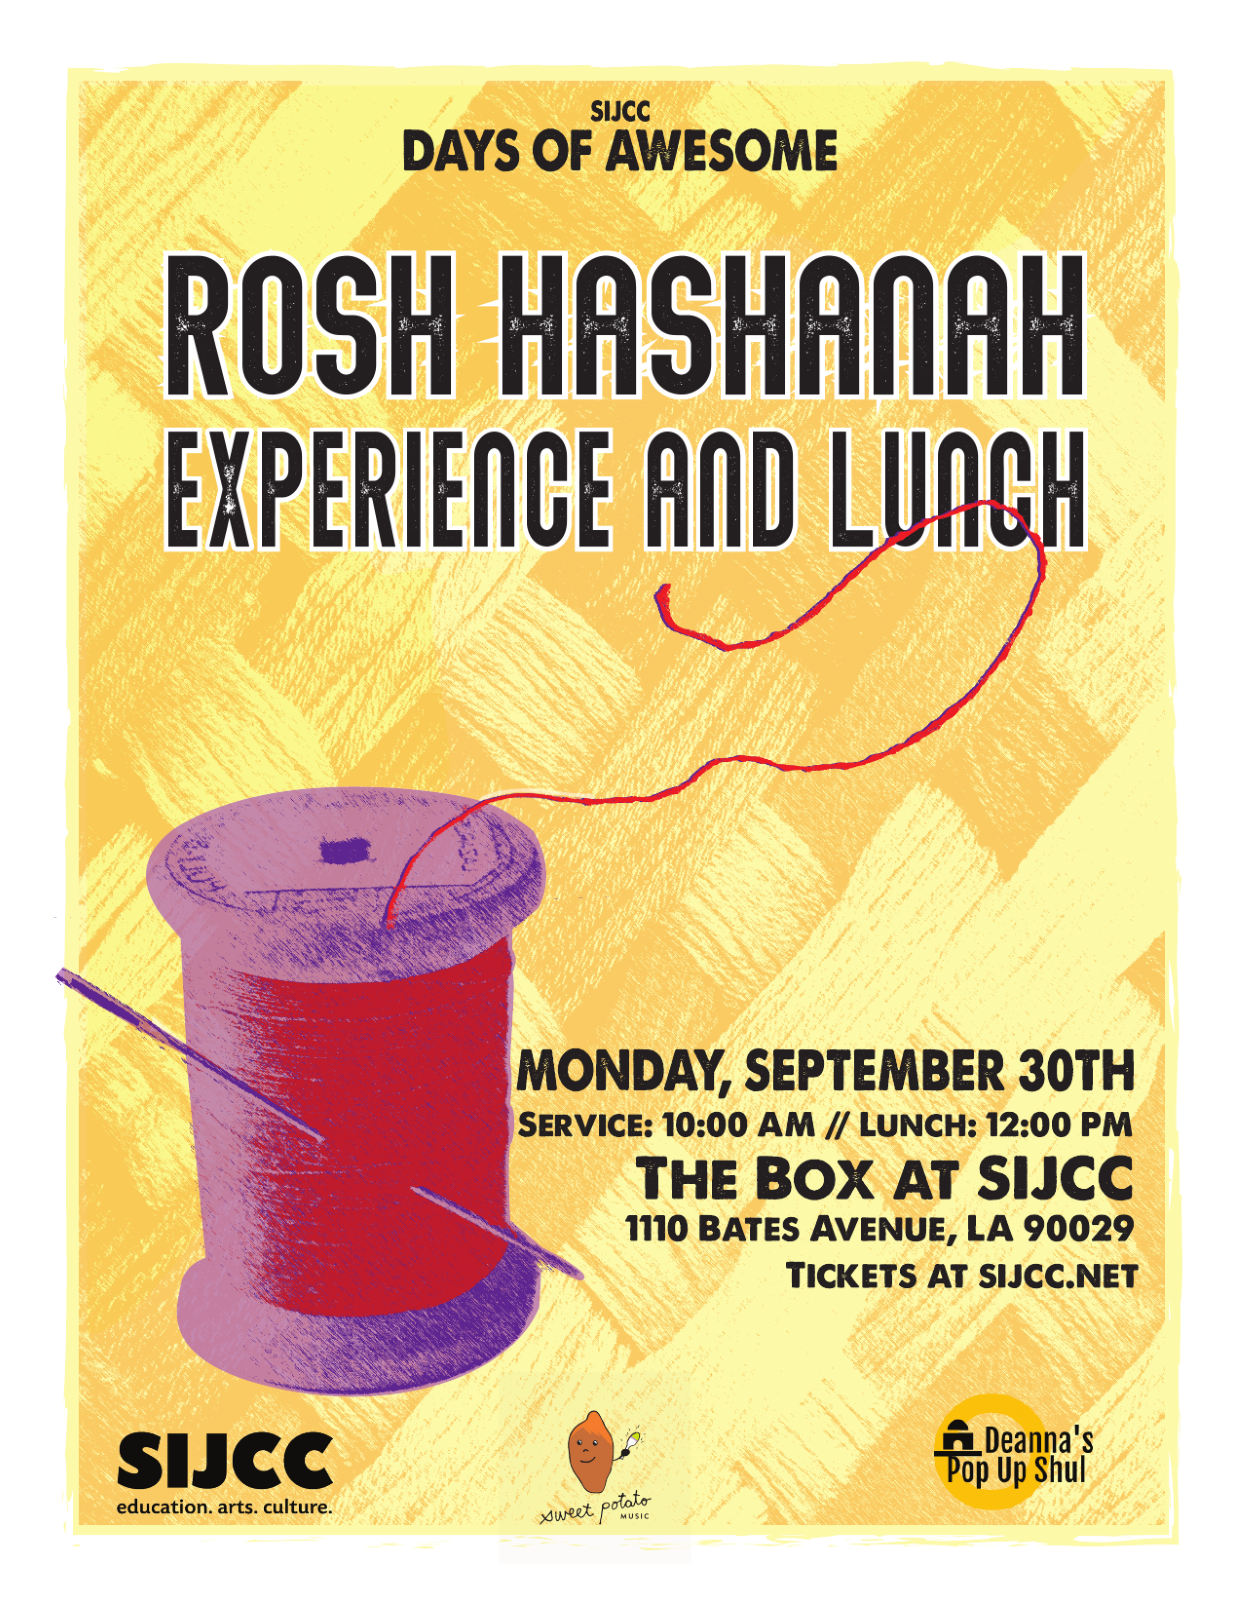 SIJCC's Days of Awesome: Rosh Hashanah Experience and Lunch image 1